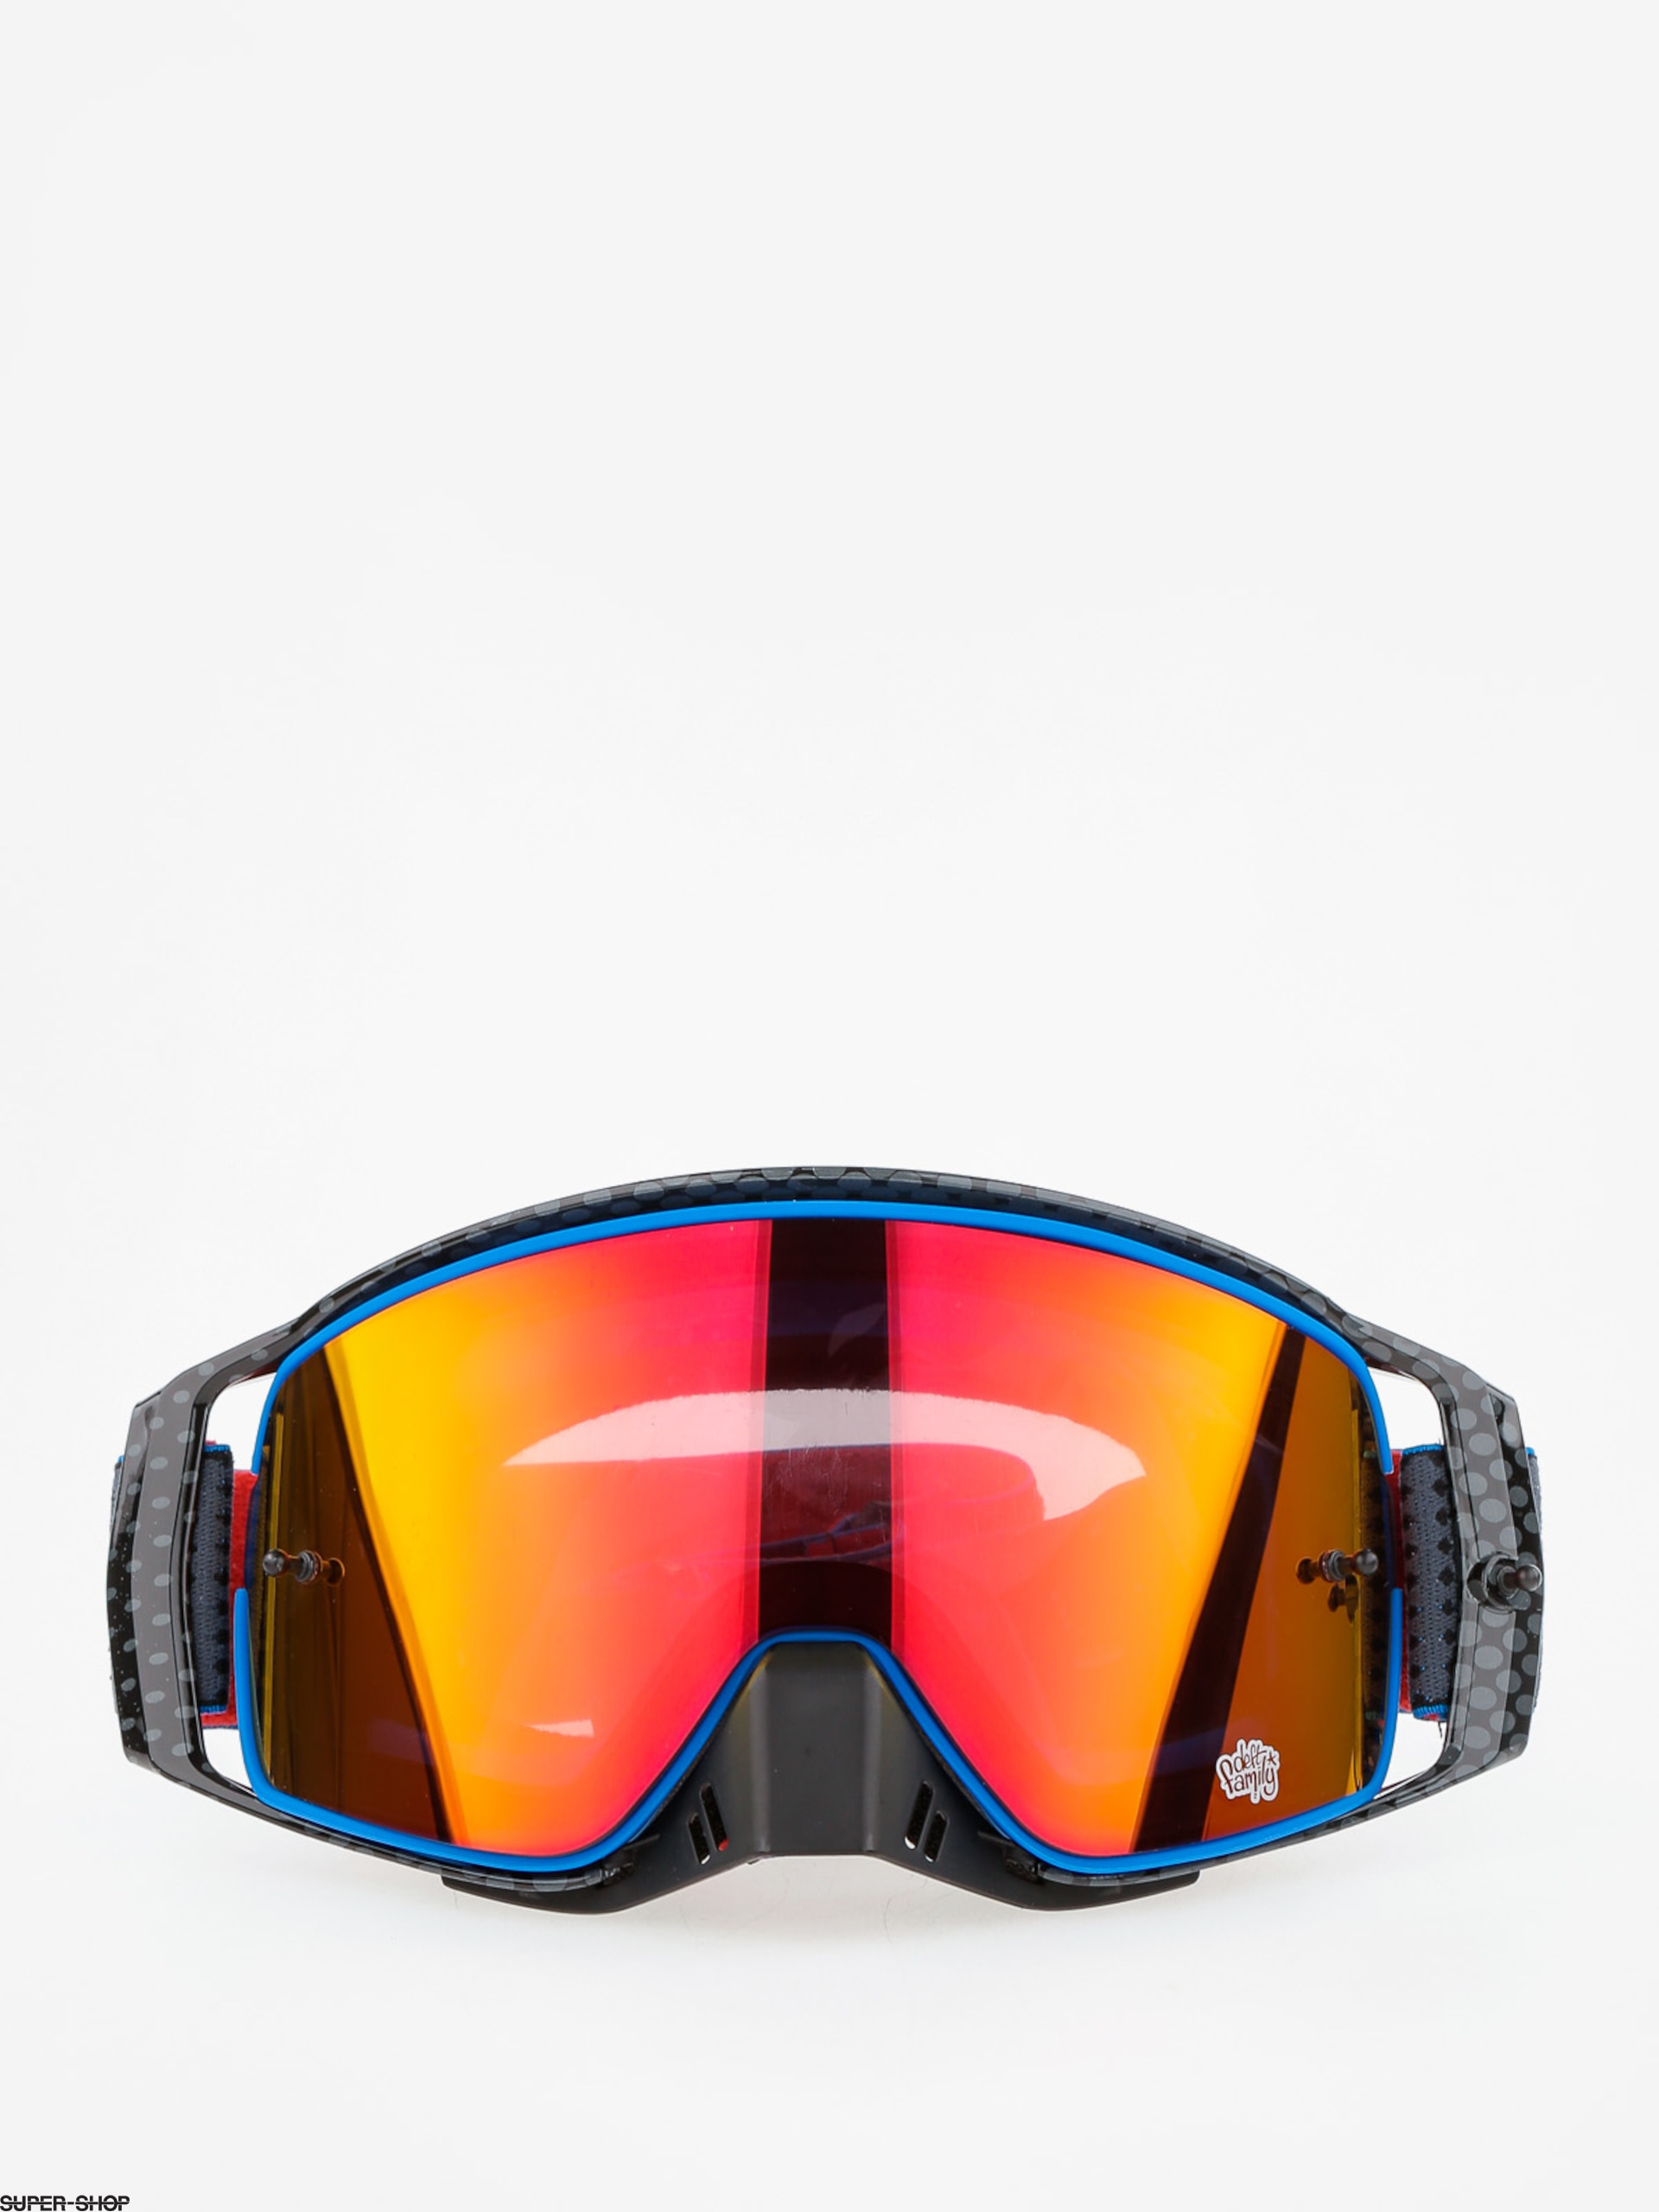 0192cb1cd Dragon Cross goggles NFX2 (nate adams/injected lumalens red ion)